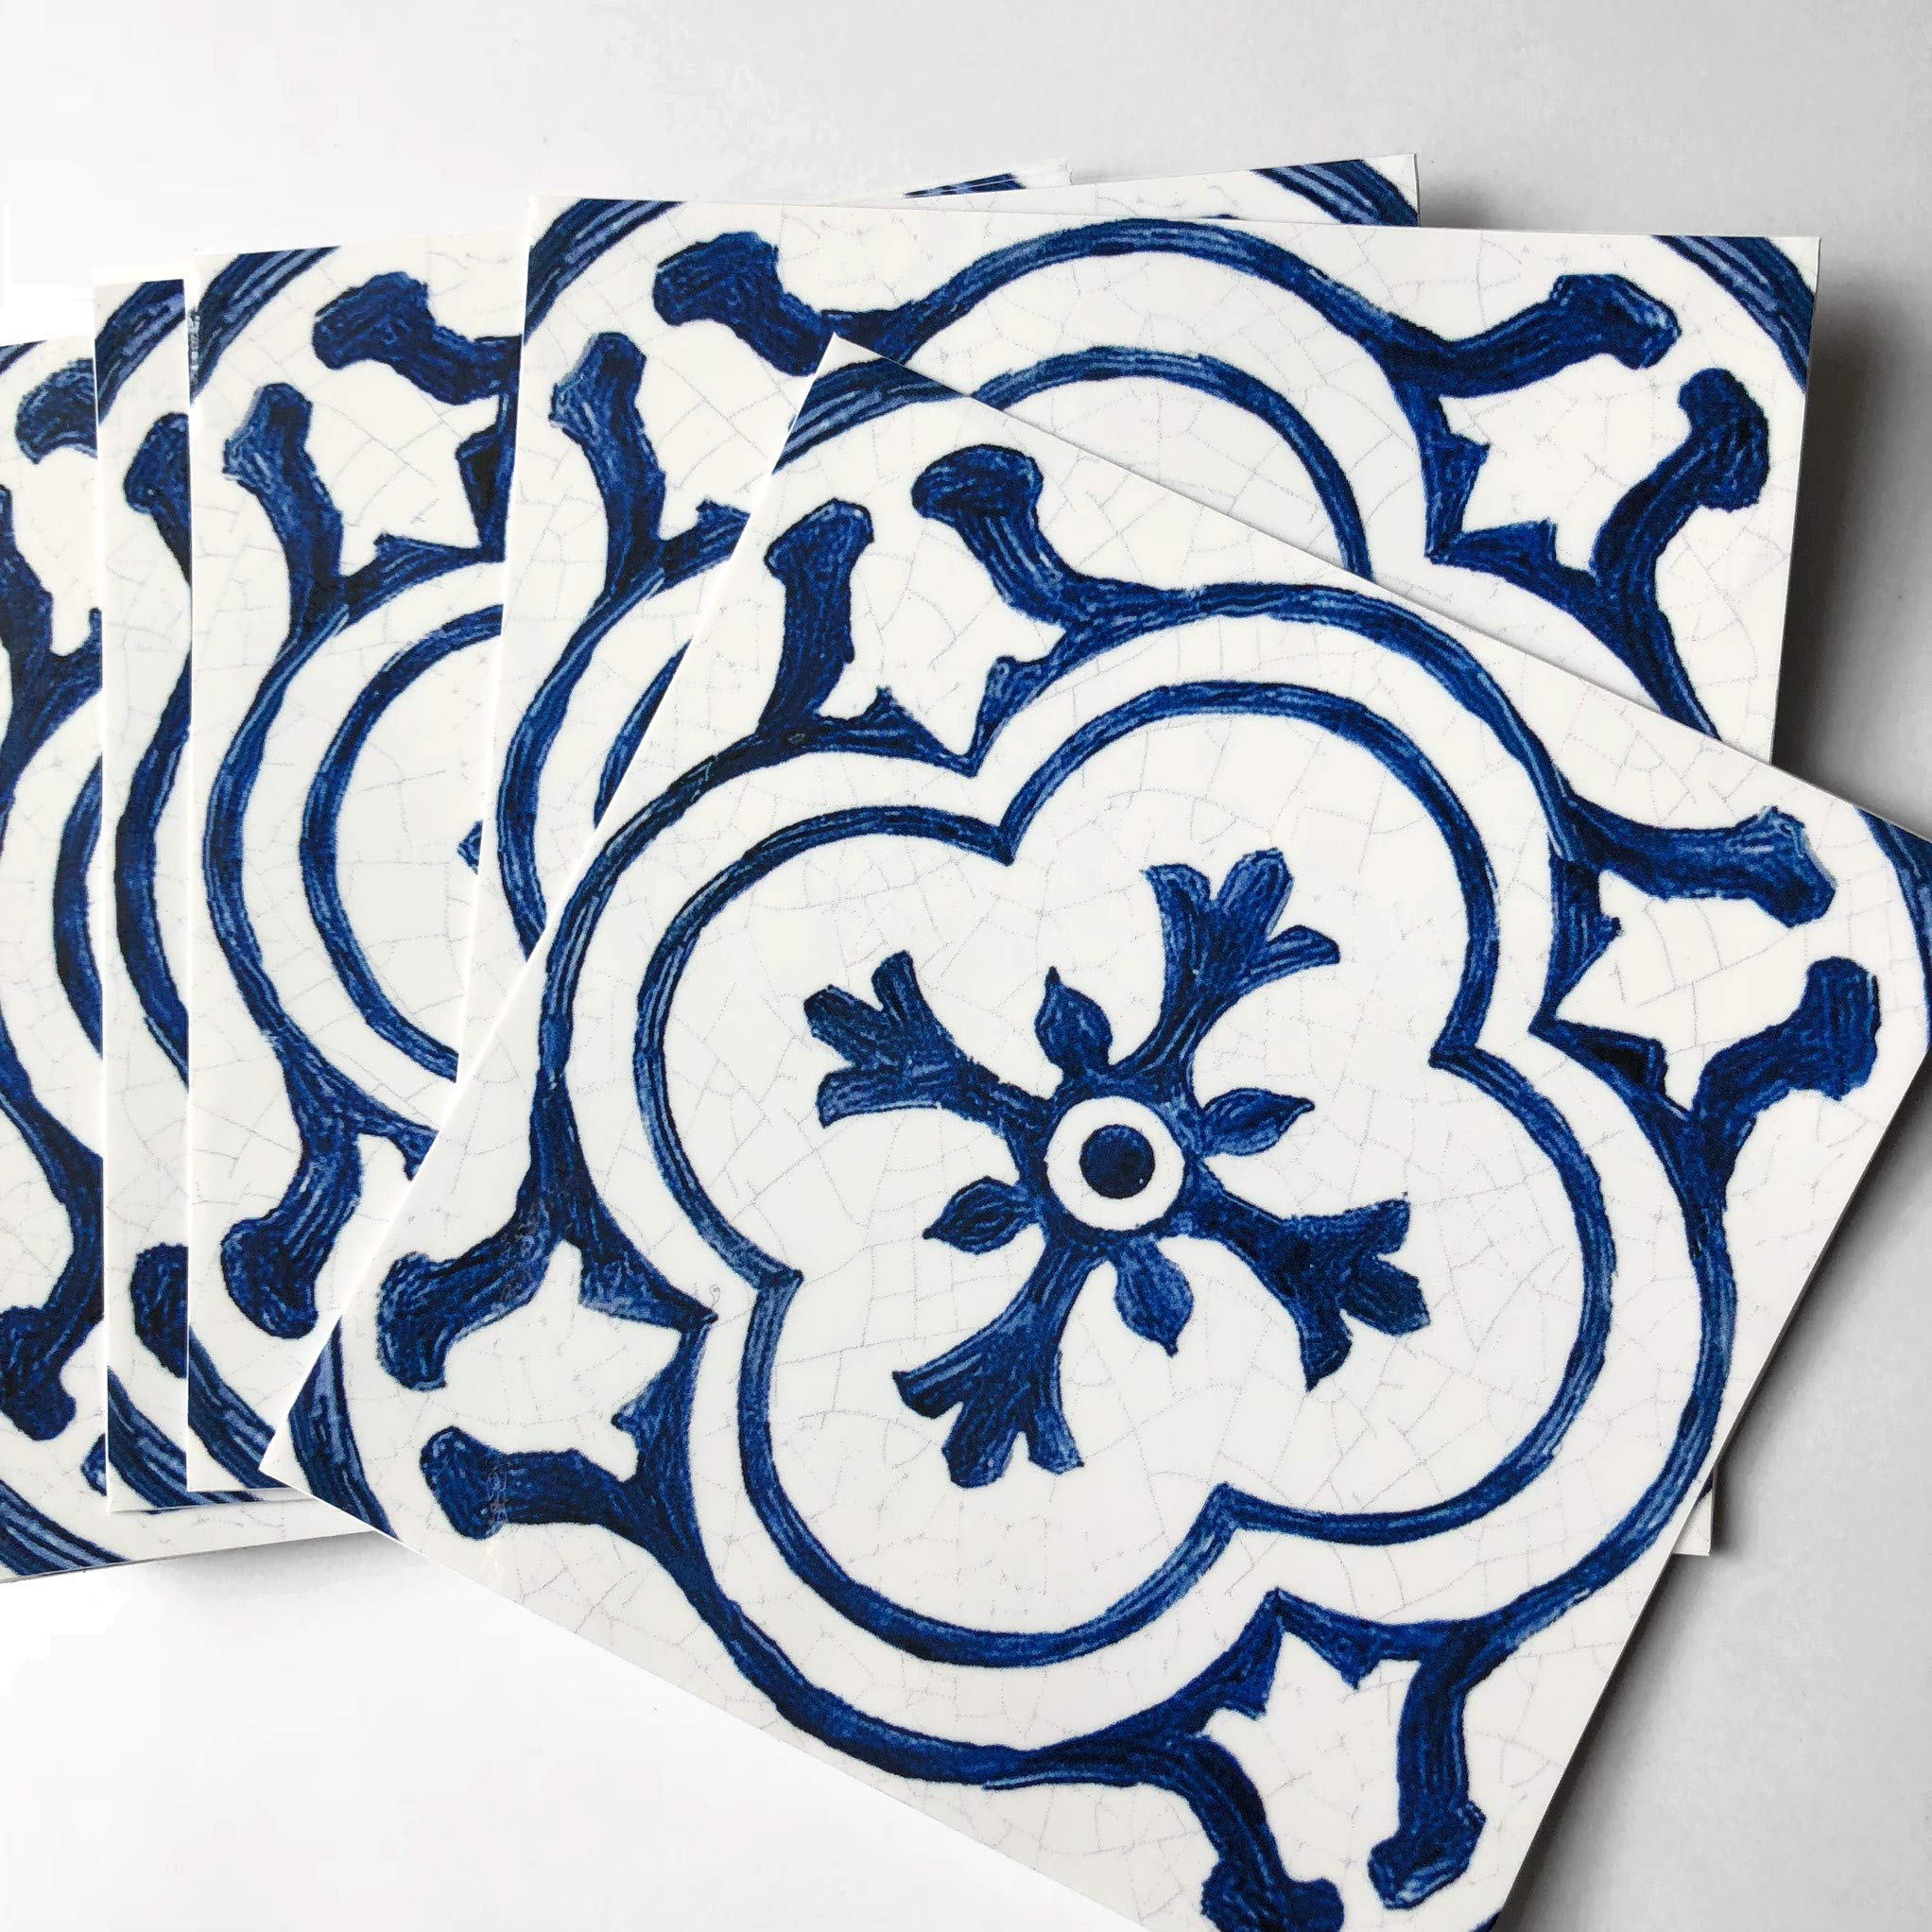 SnazzyDecal Tile Stickers Antique Dutch 40pc 4-1/4in Peel and Stick for Kitchen and Bath BW002-4Q by SnazzyDecal (Image #3)